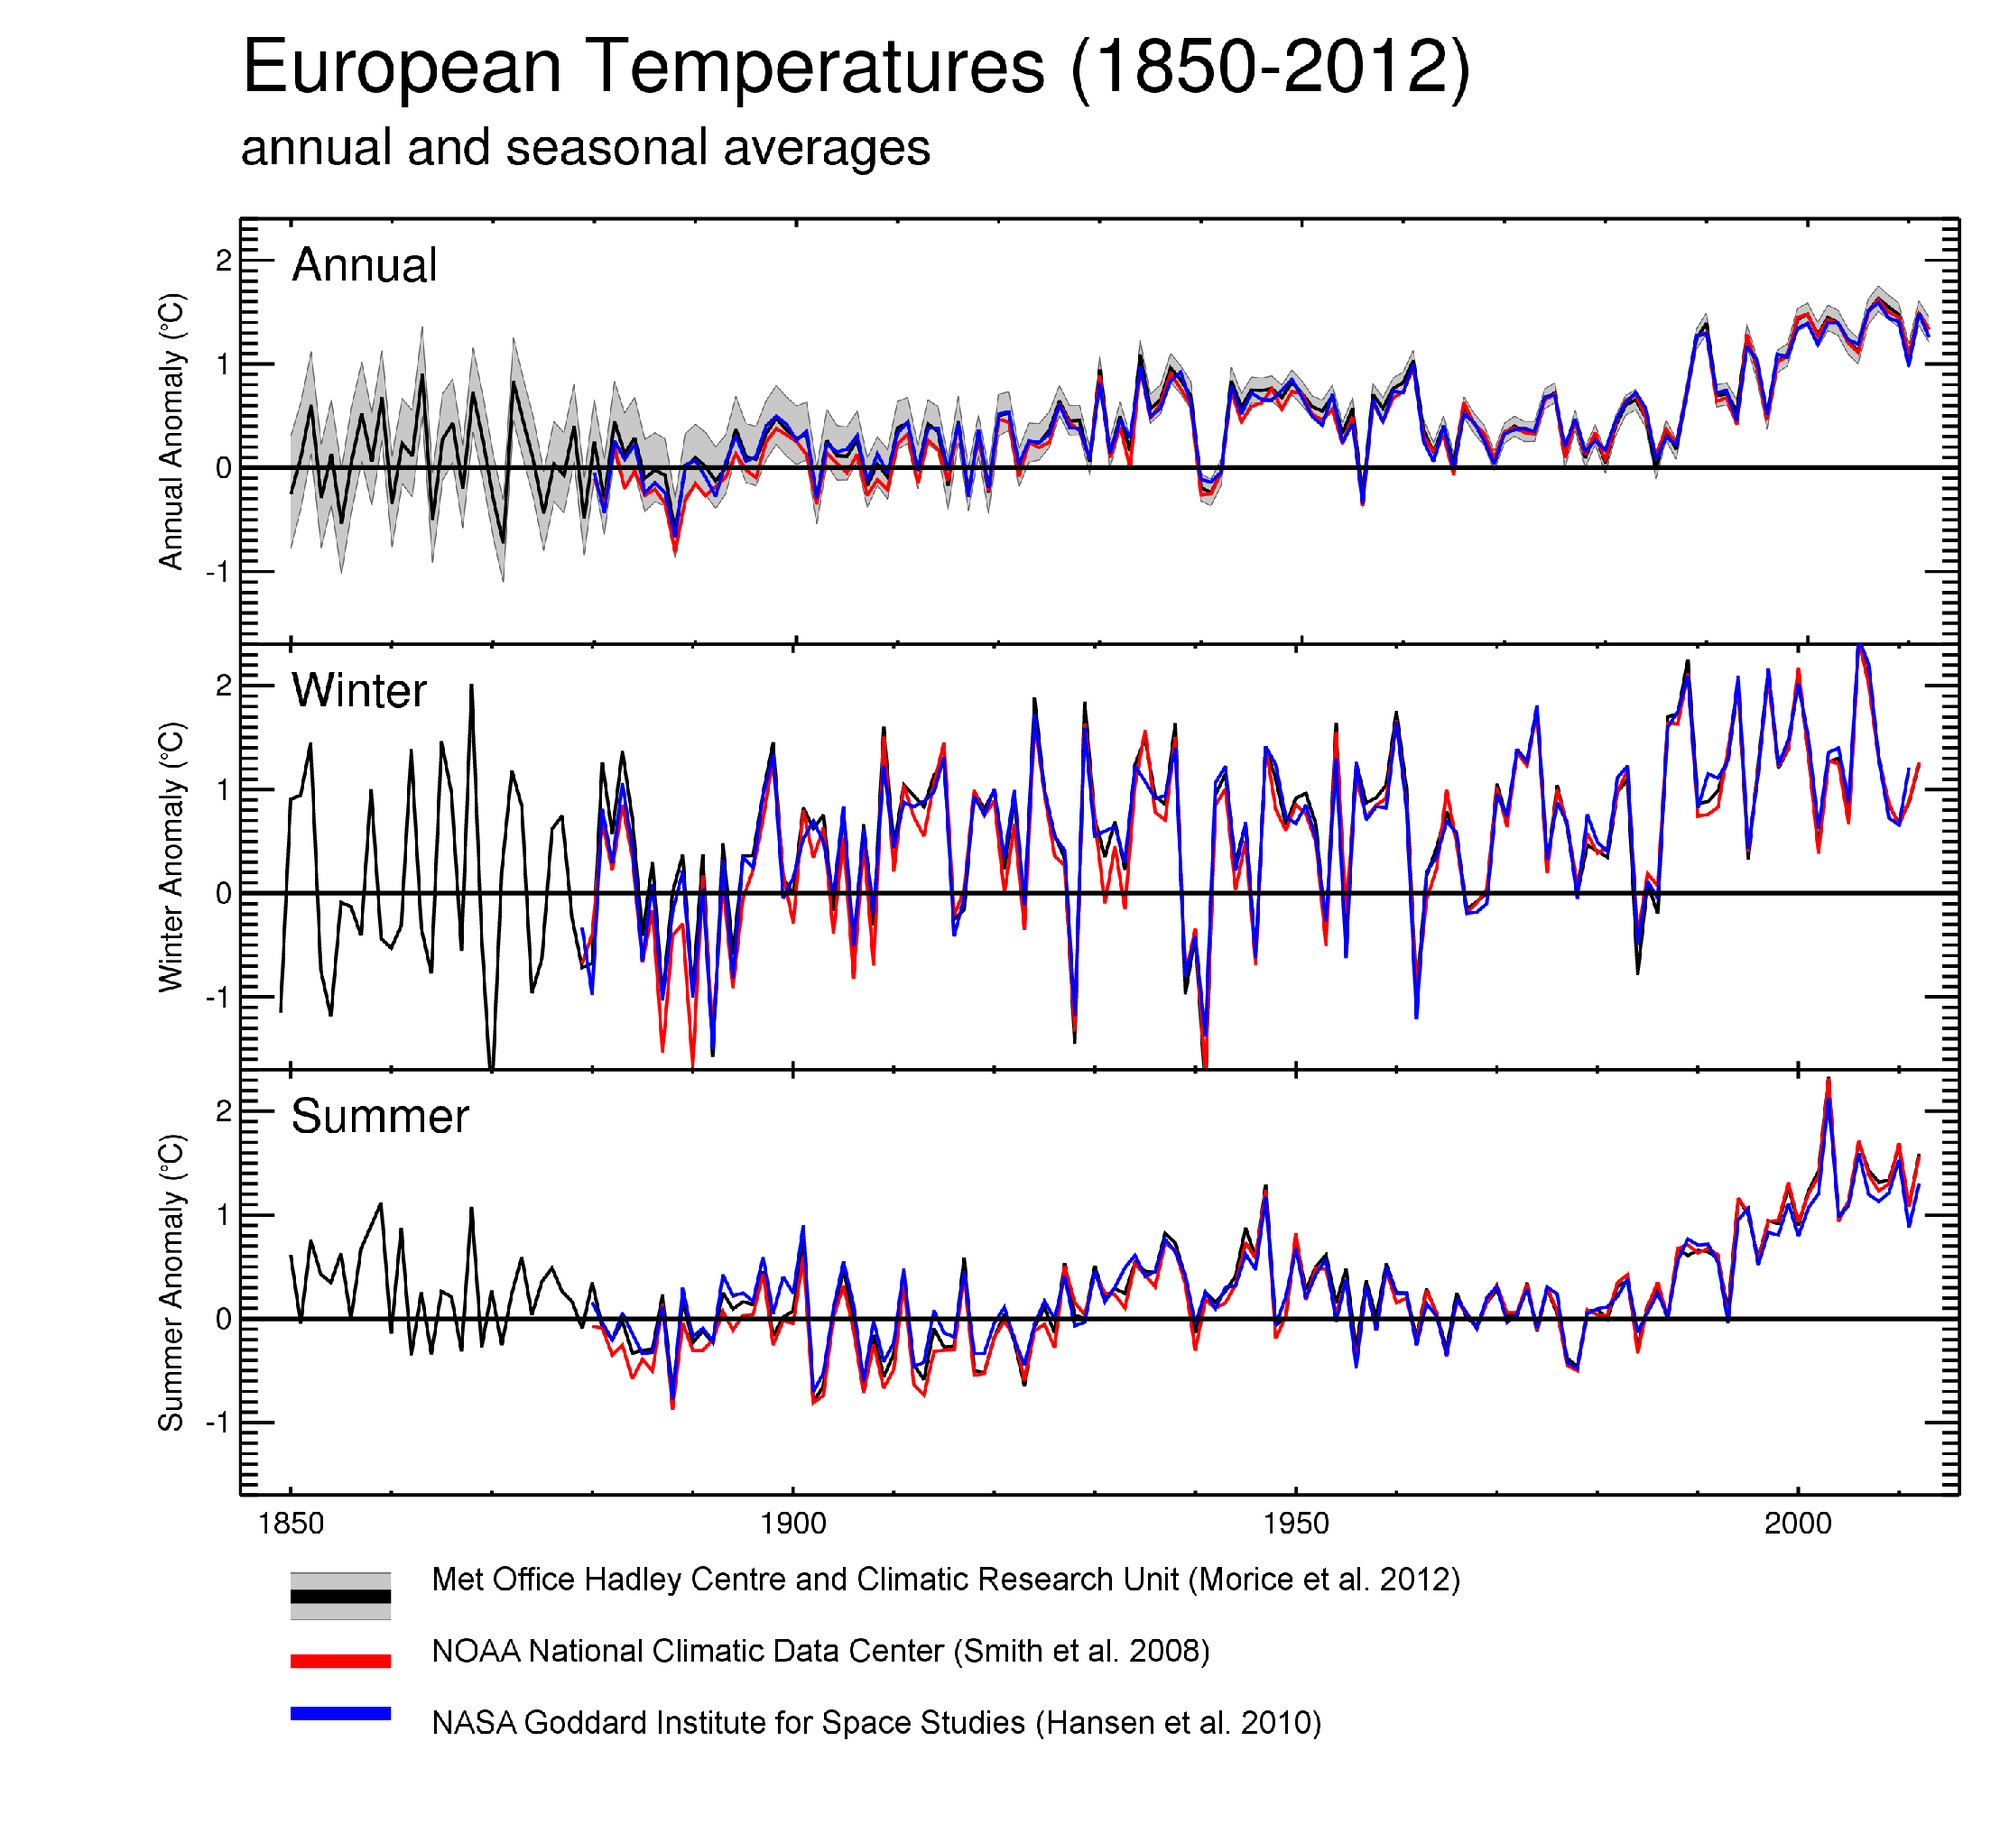 European average air temperature anomalies (1850 to 2012) in ... on the union in 1860, canada in 1860, halloween in 1860, michigan in 1860, number of american states in 1860, italy map in 1860, nevada in 1860, union states in 1860, georgia in 1860, california in 1860, map of america in 1860, new york in 1860, map of usa in 1860, alabama in 1860, united states in 1860, map of europe in 1860,